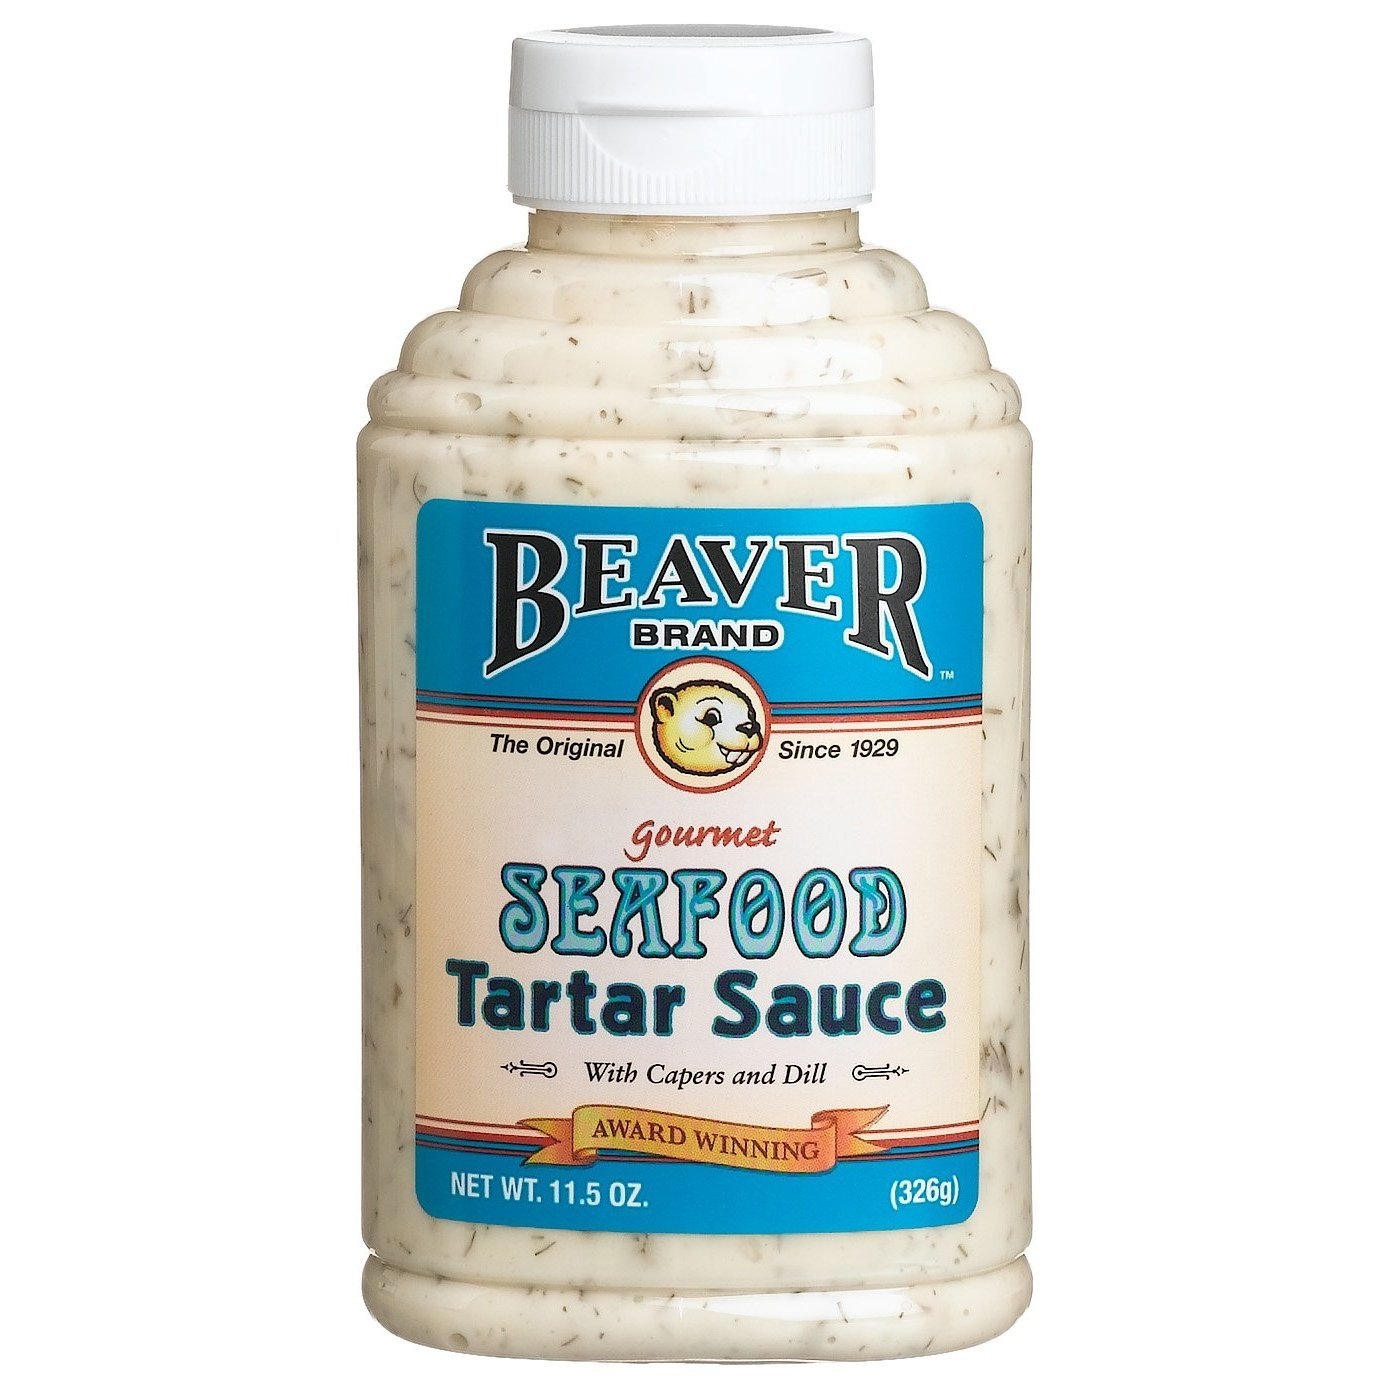 BEAVER Brand Seafood Tartar Sauce, 11.5 Ounce Squeezable Bottle(Pack of 12)